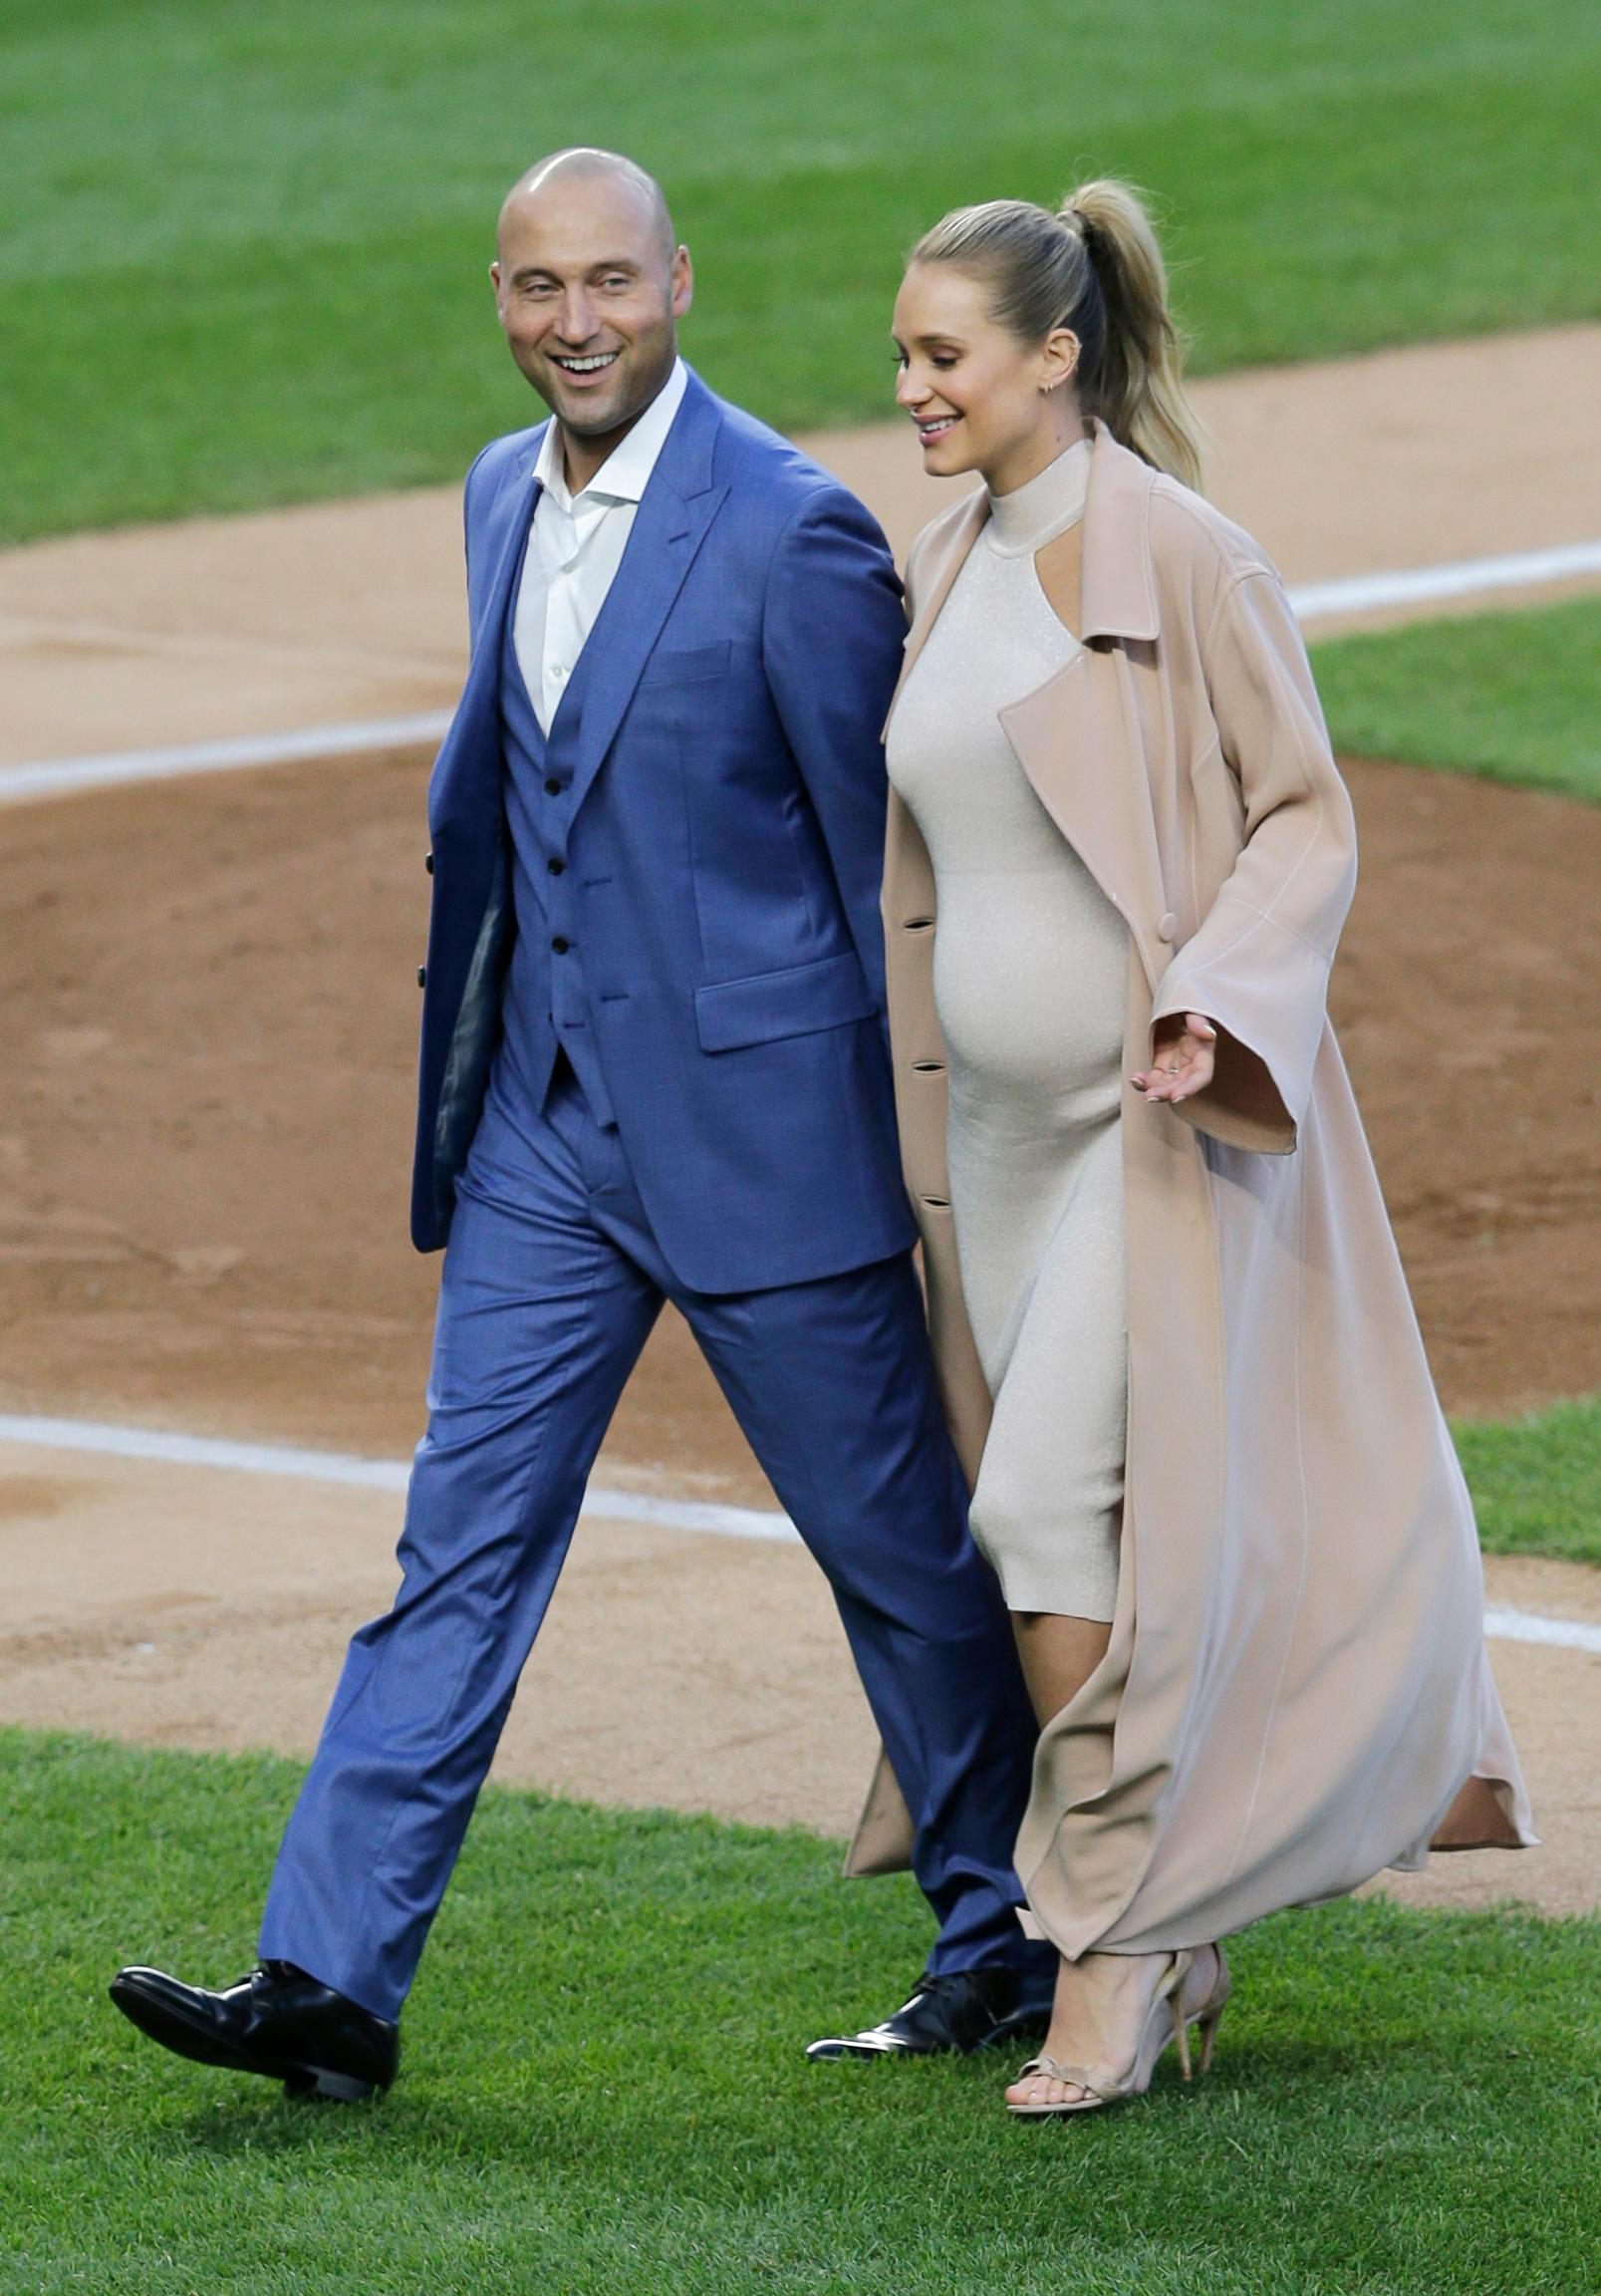 Former New York Yankee Derek Jeter and his wife Hannah Jeter leave the field after a ceremony retiring Jeter's number at Yankee Stadium, Sunday, May 14, 2017, in New York. (AP Photo/Seth Wenig)